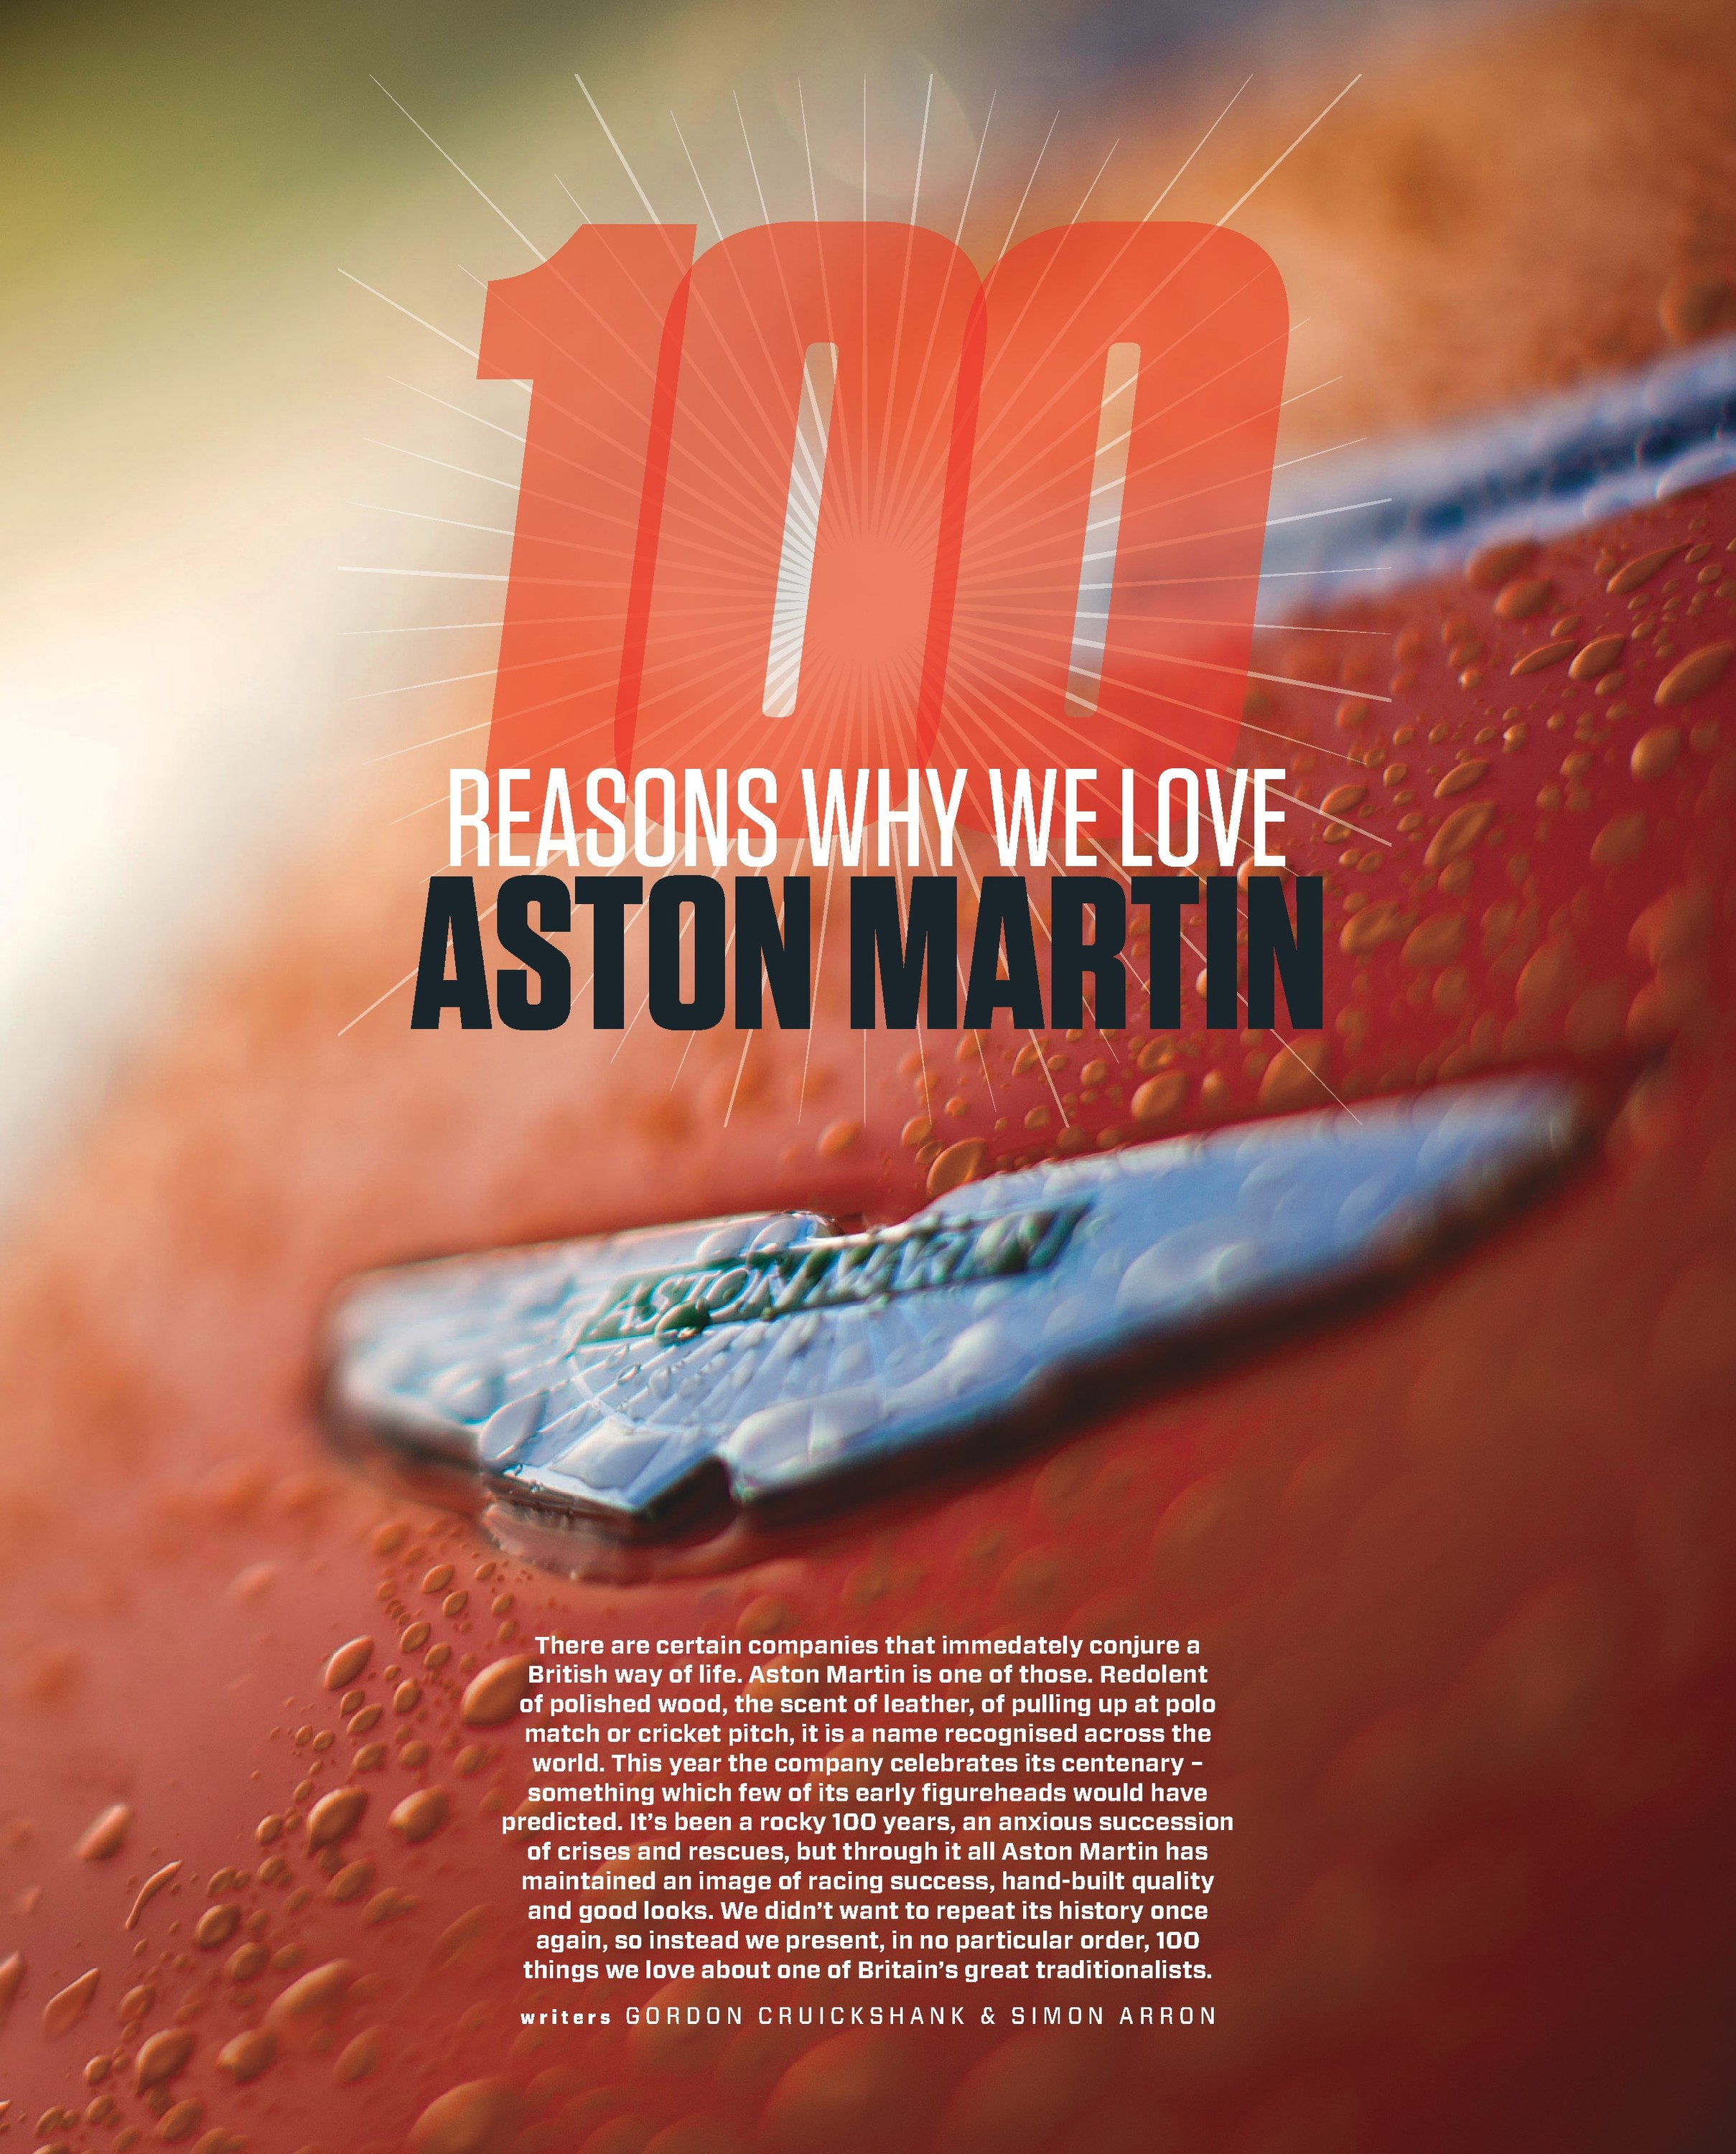 100 reasons why we love Aston Martin image